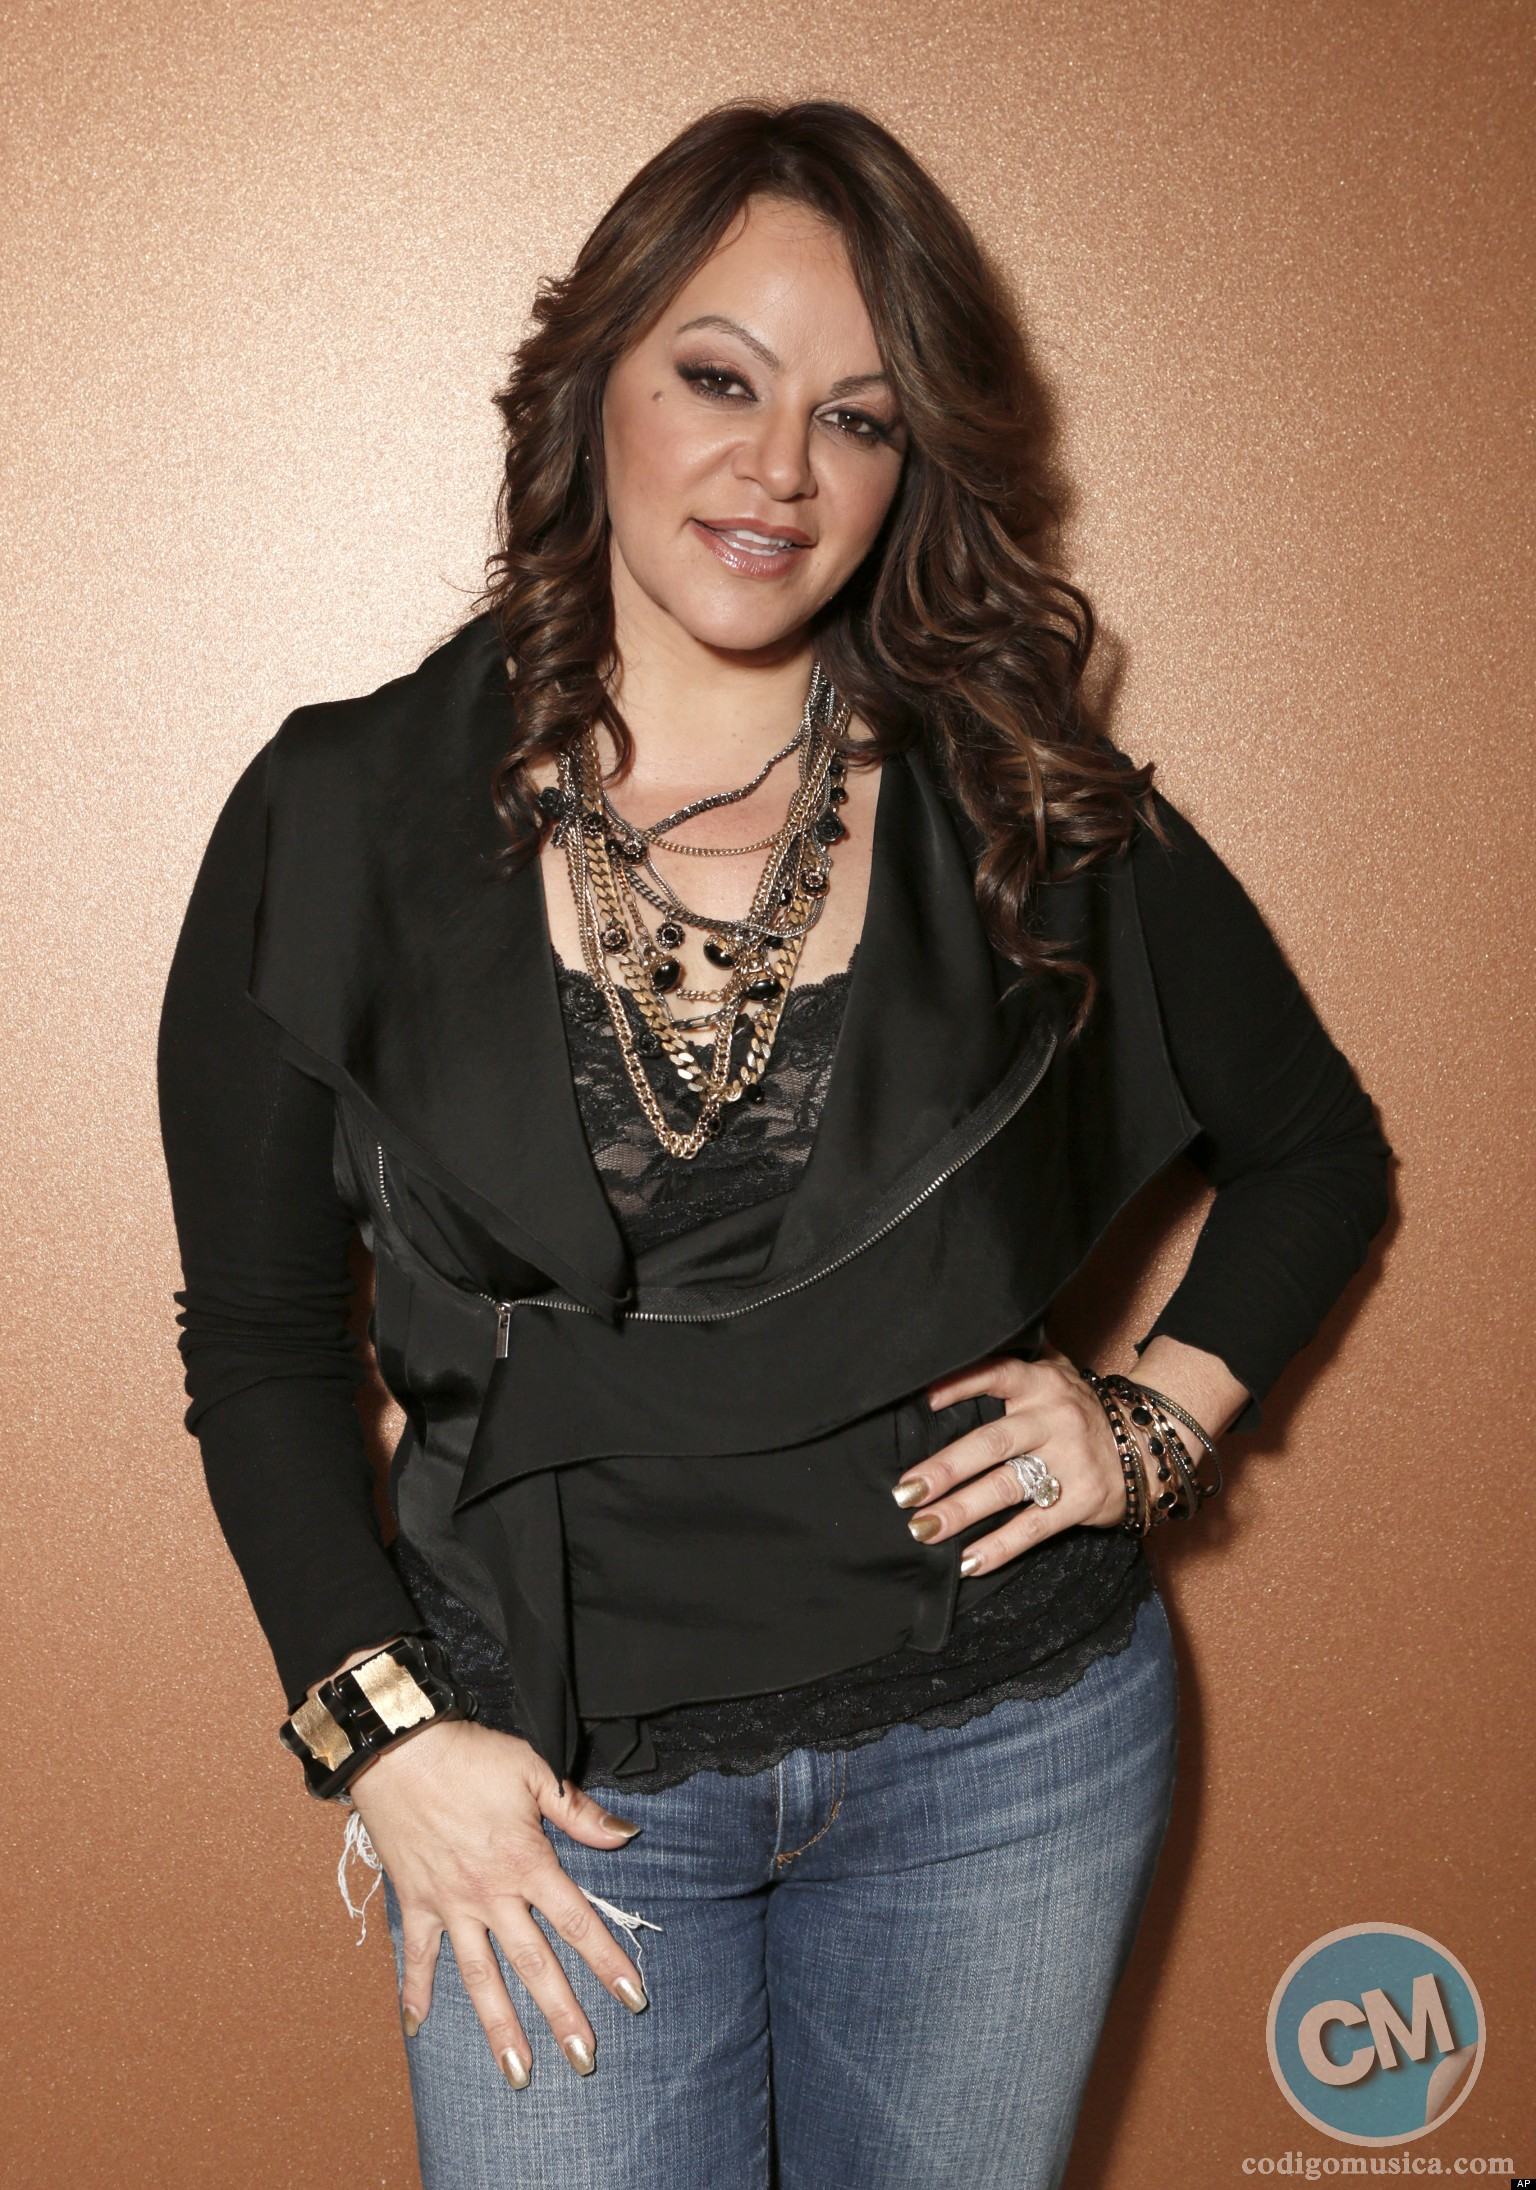 Jenni Rivera attends a press conference on Friday, Aug. 24, 2012, in Woodland Hills, California. (Photo by Todd Williamson/Invision/AP)